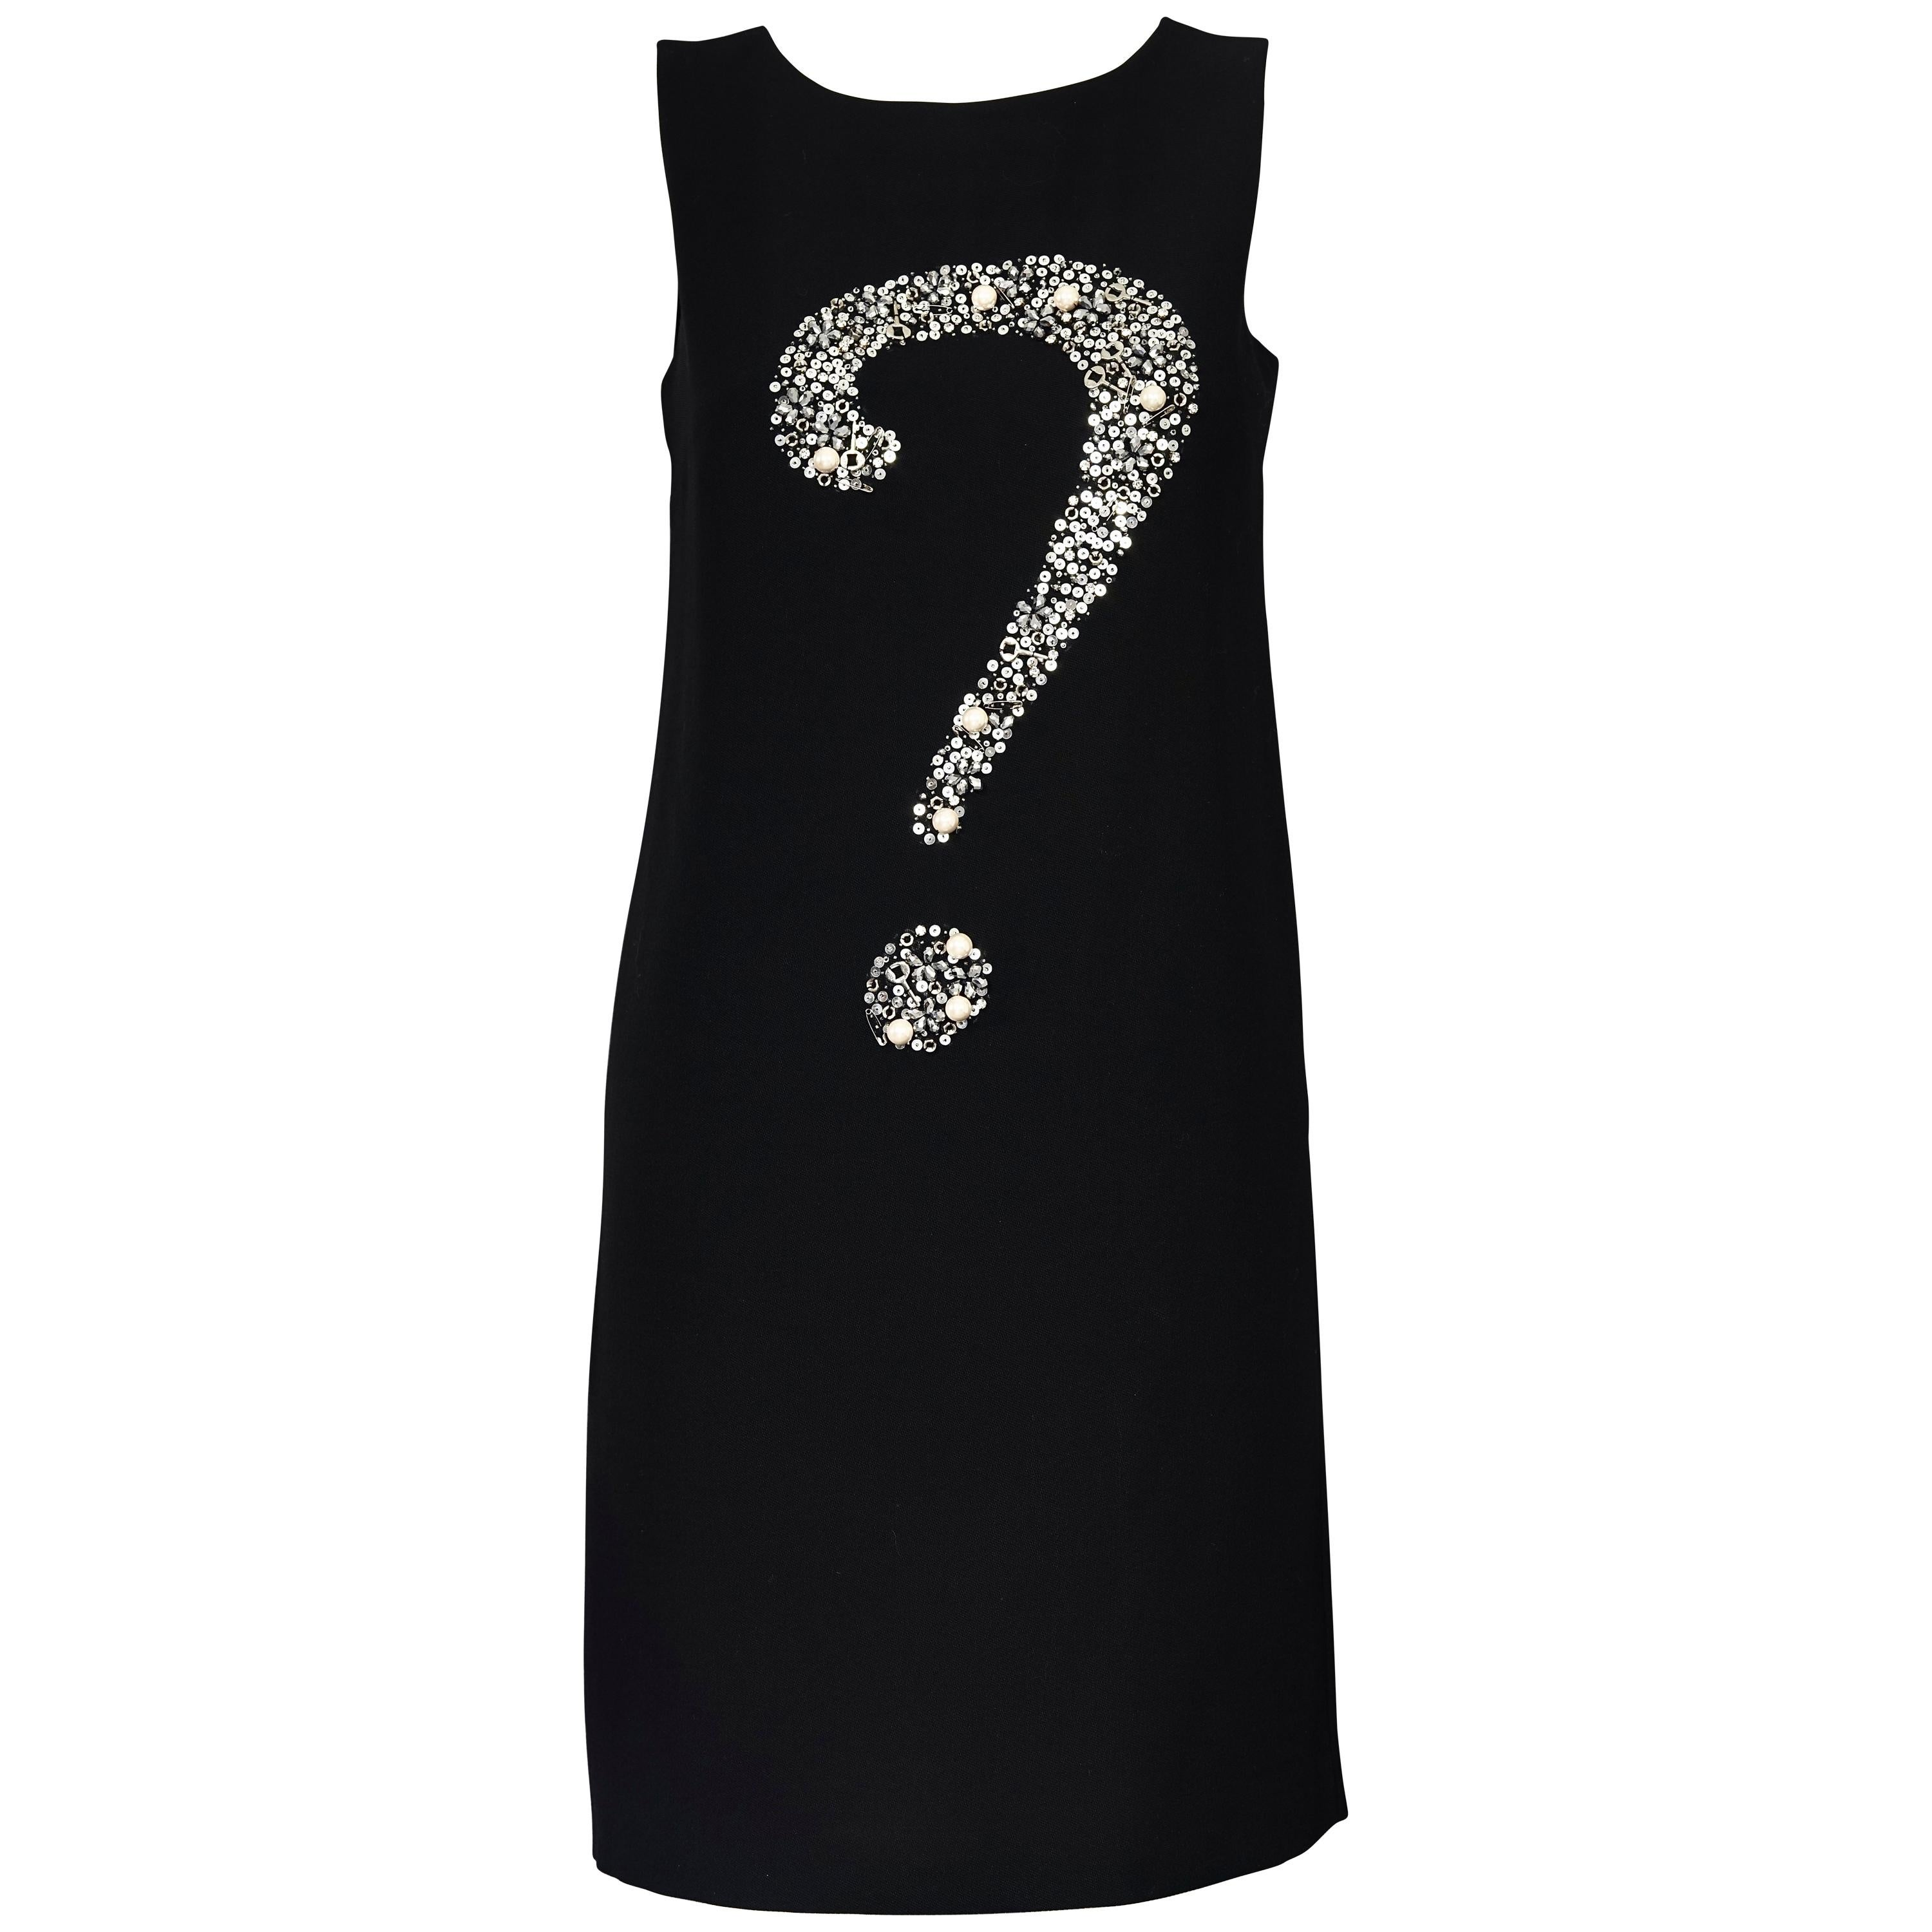 Iconic MOSCHINO Question Mark Embellished Dress